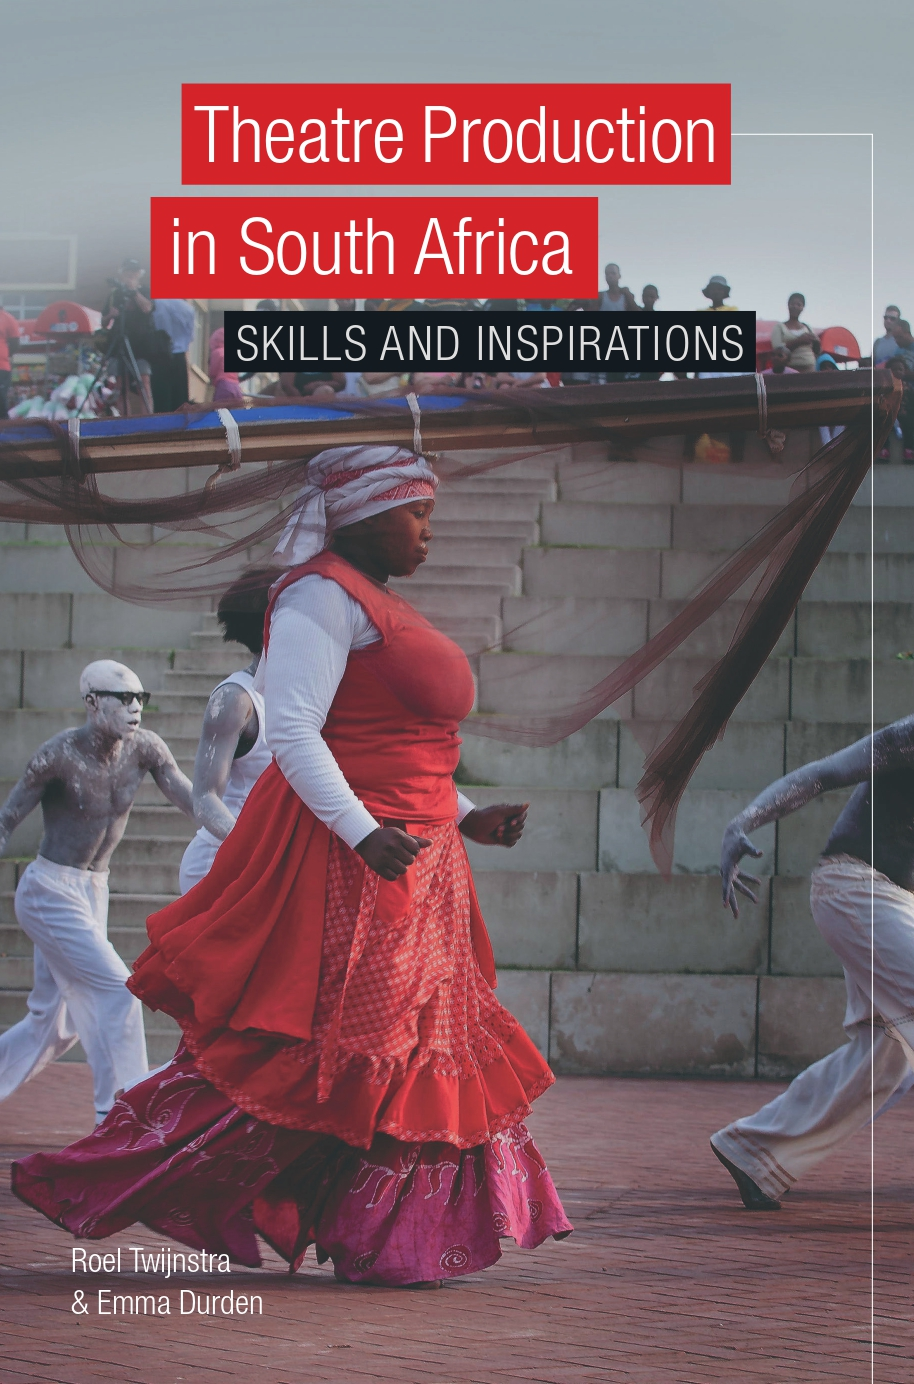 Theatre Production  in South Africa, skills and inspirations. Launch 4 july 2016 NAF.